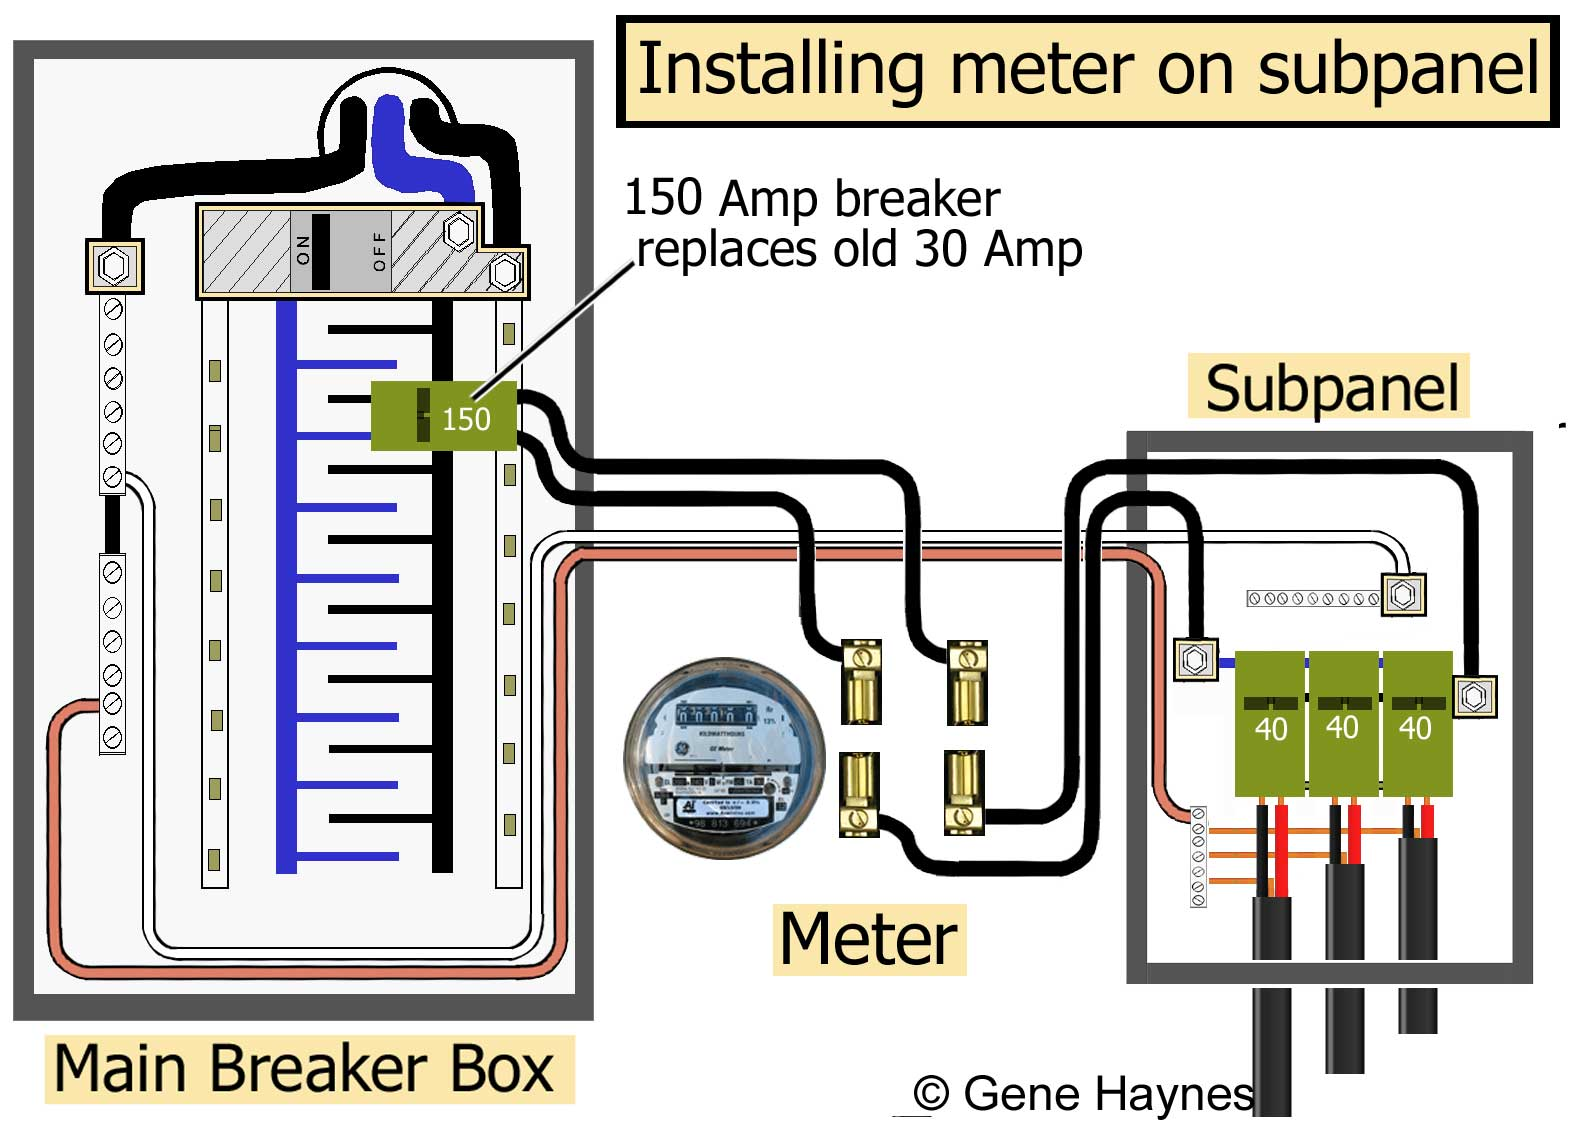 Main subpanel Tankless meter 600 electric sub meter wiring diagram electrical outlet light wiring breaker box wiring diagram sub panel at reclaimingppi.co